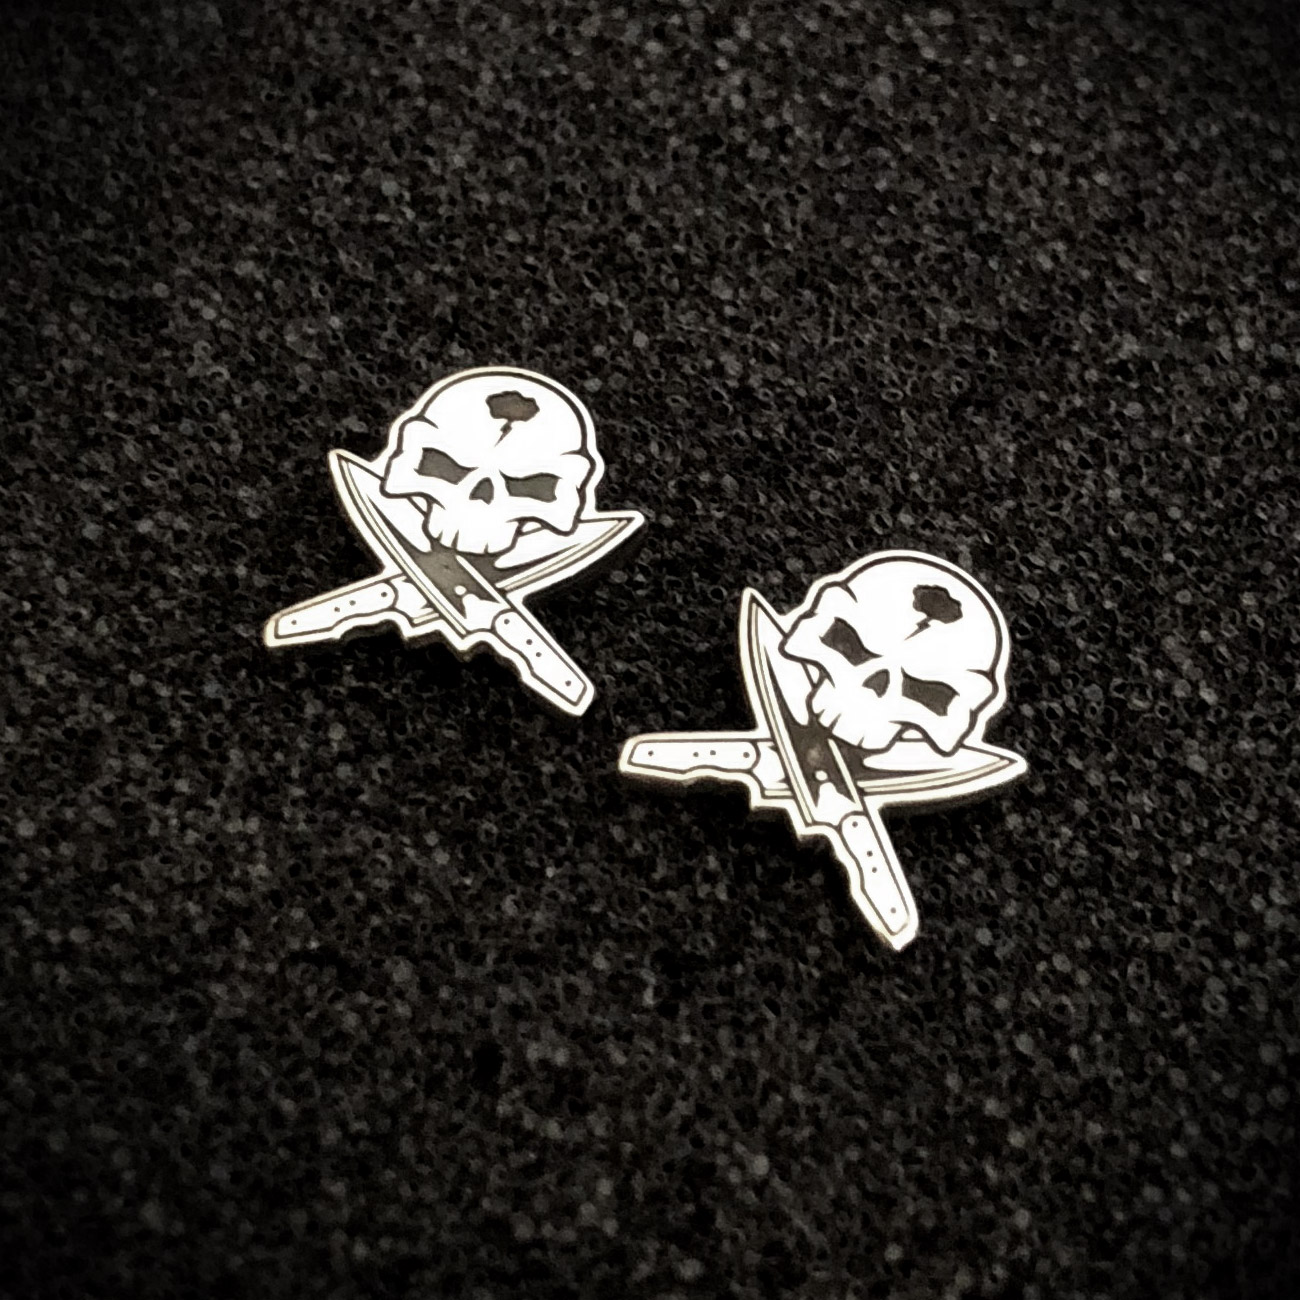 handmade-skull-and-cross-knives-earrings-sterling-silver-fat-punk-studio-01